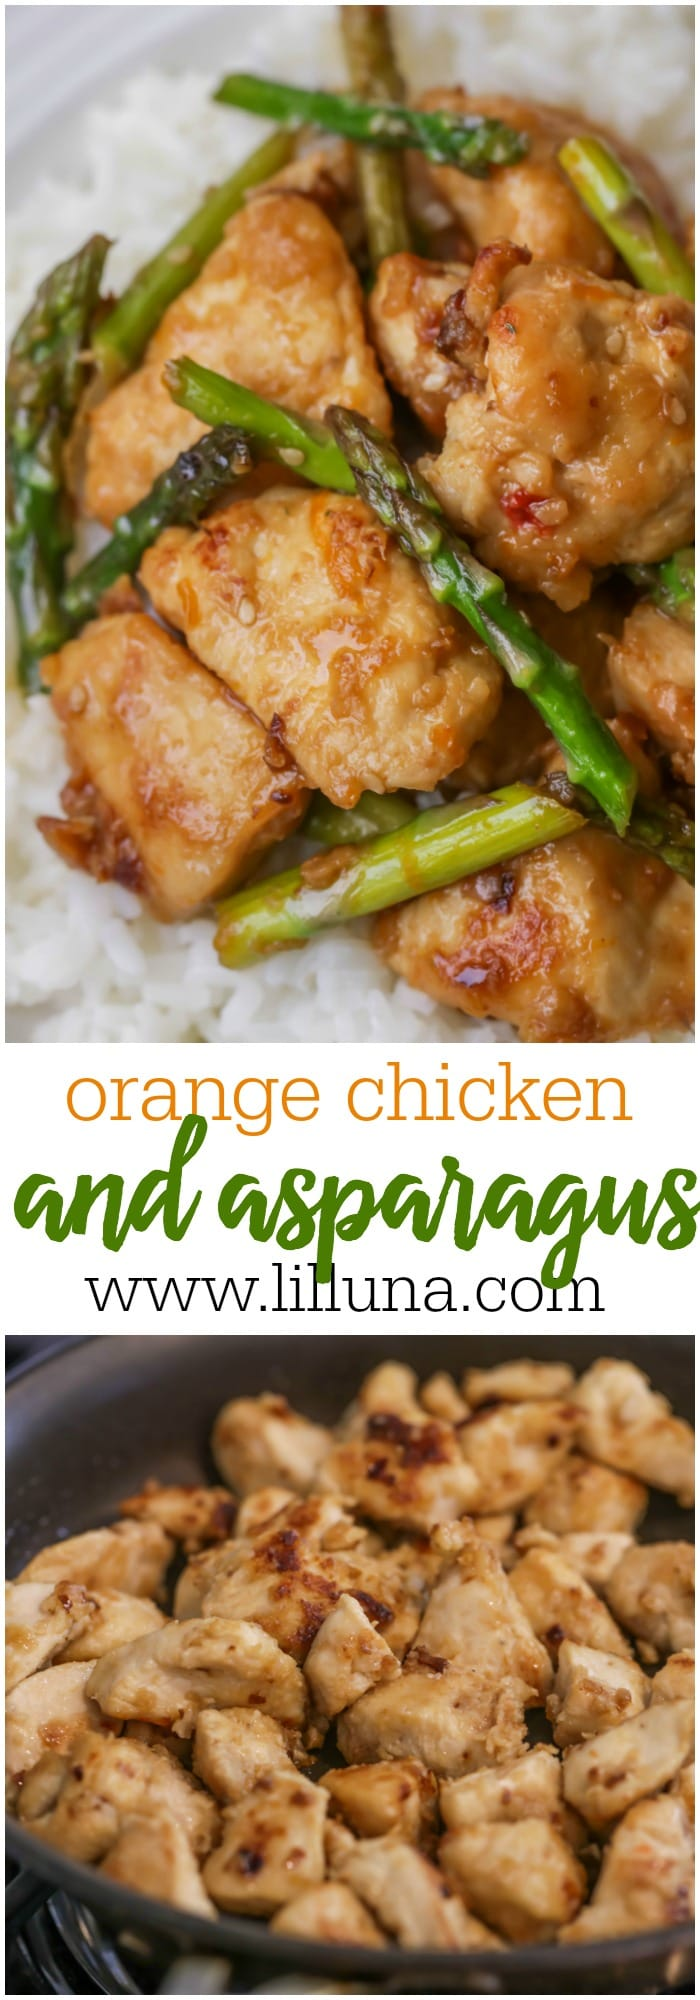 Orange Chicken and Asparagus - a family favorite recipe. Serve over rice or noodles or enjoy on it's own!